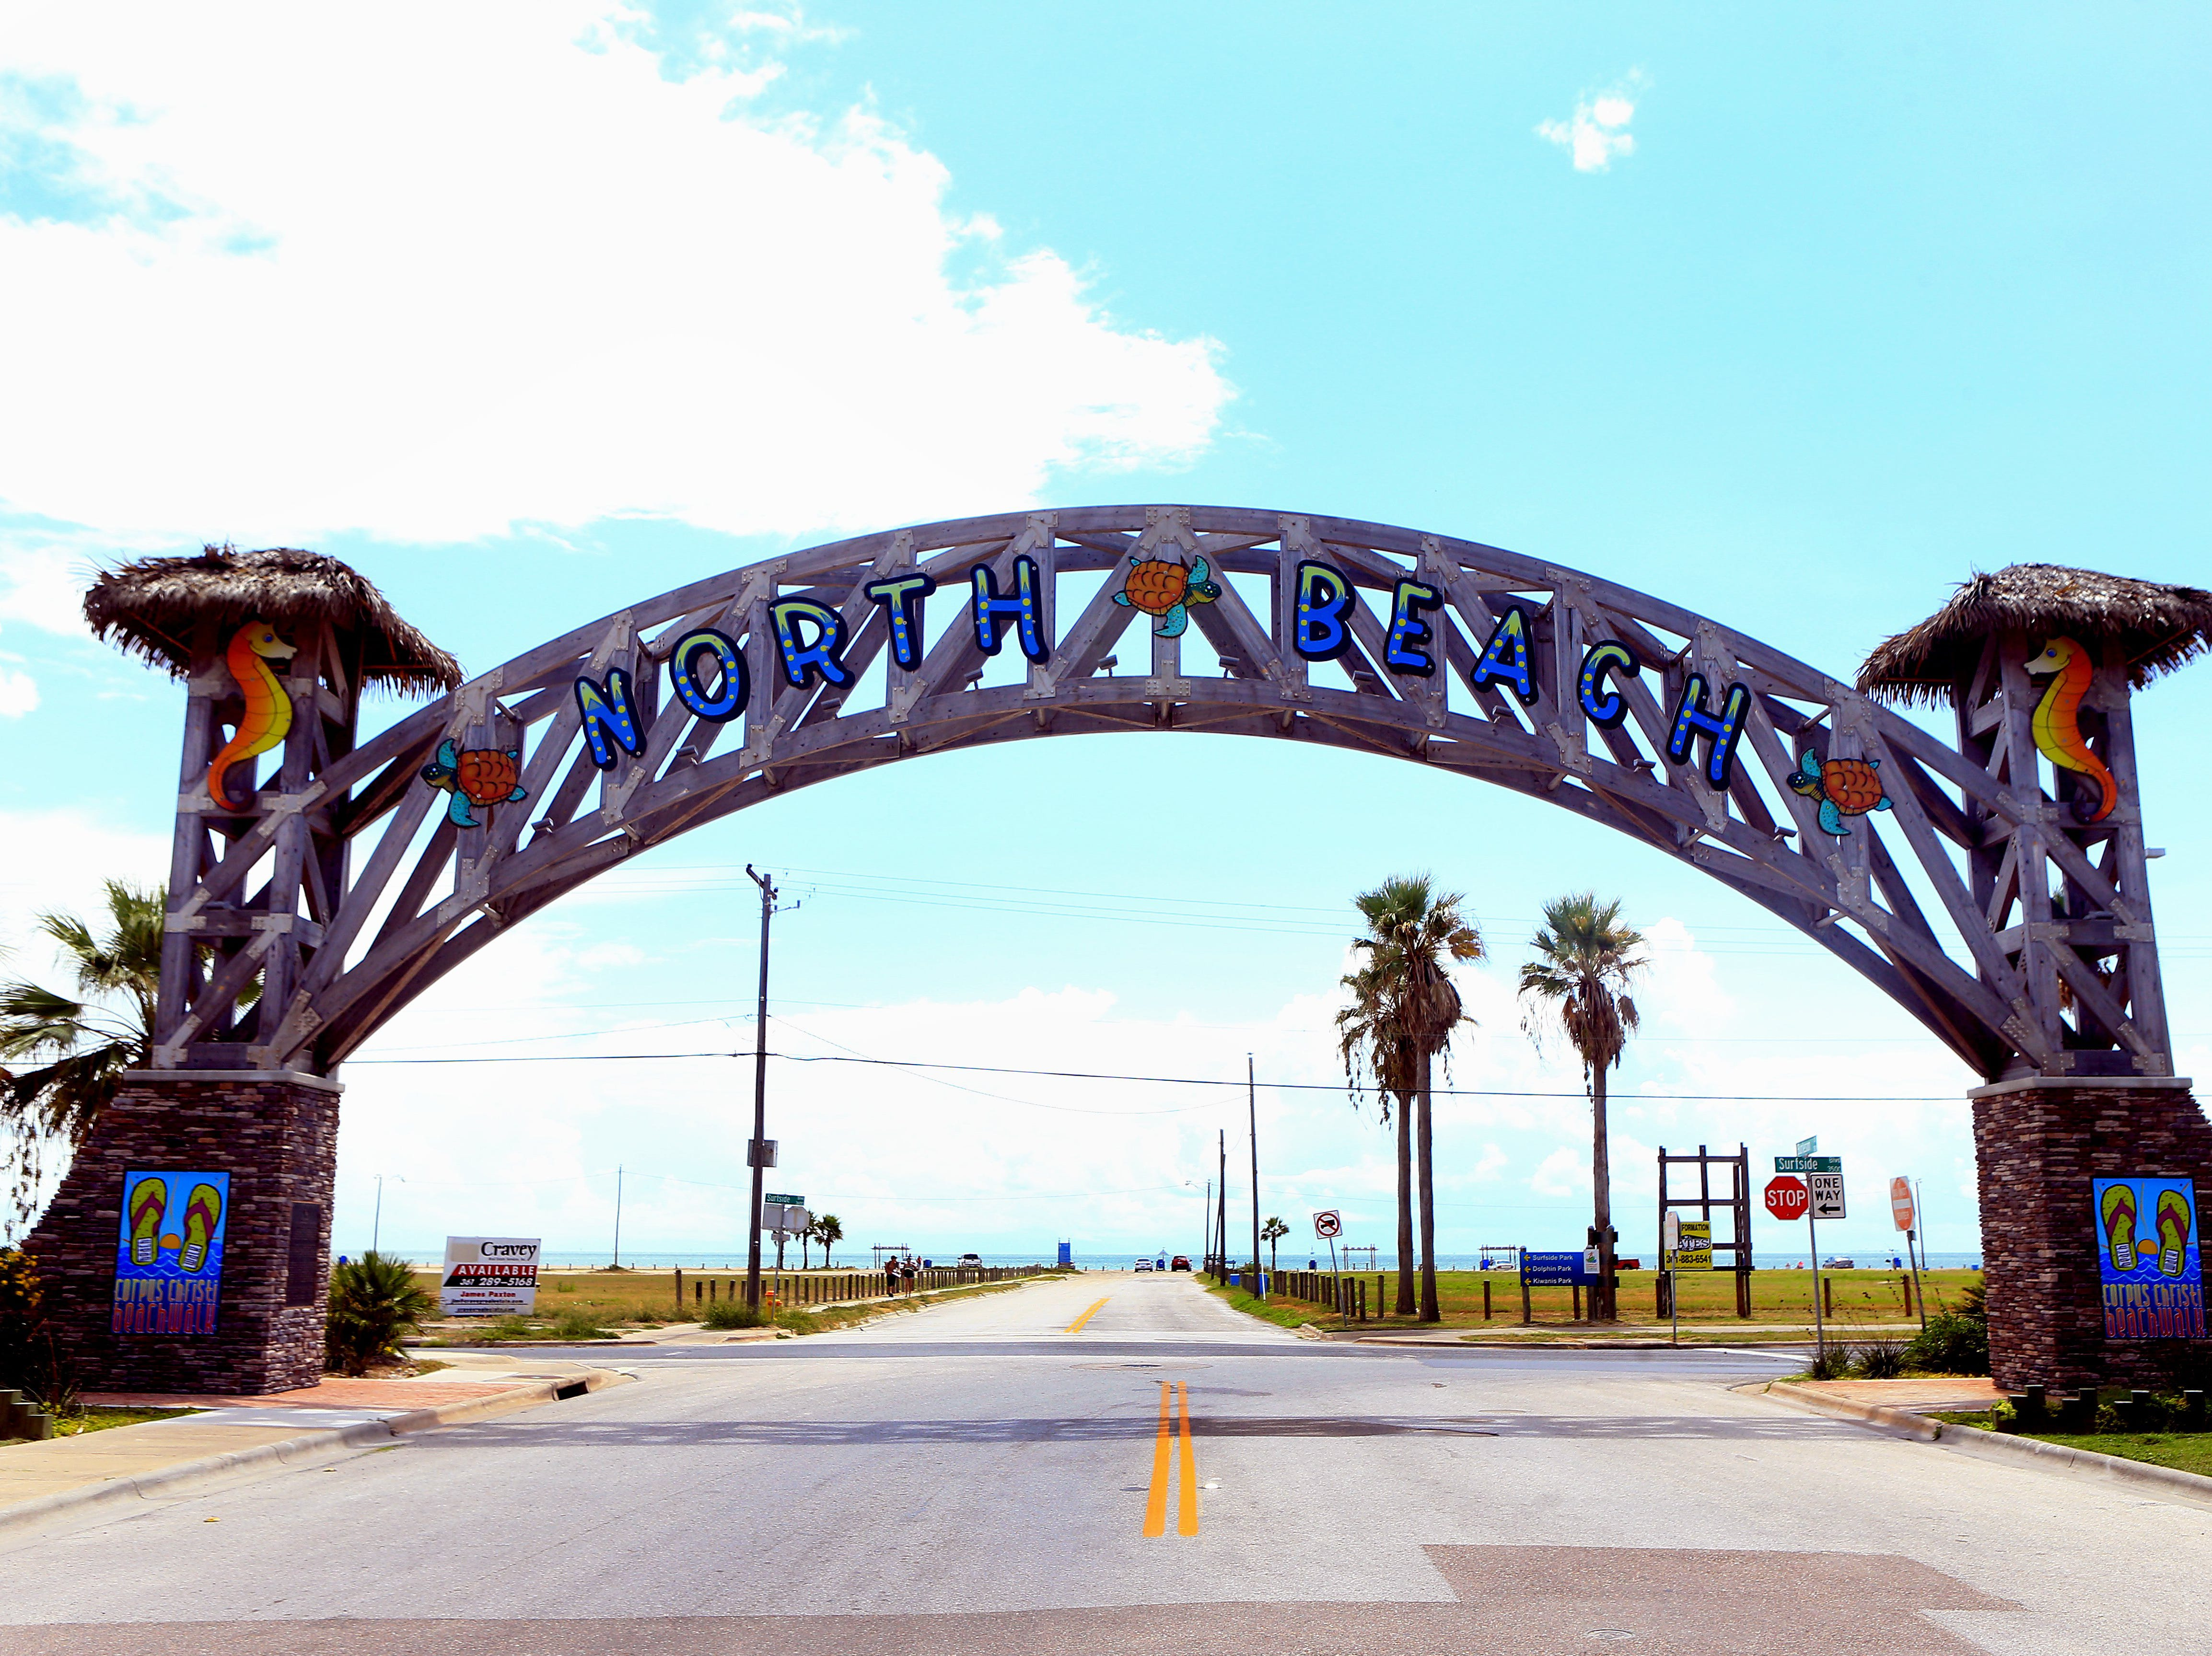 The North Beach sign welcomes people Wednesday Sept. 2, 2015 in Corpus Christi.